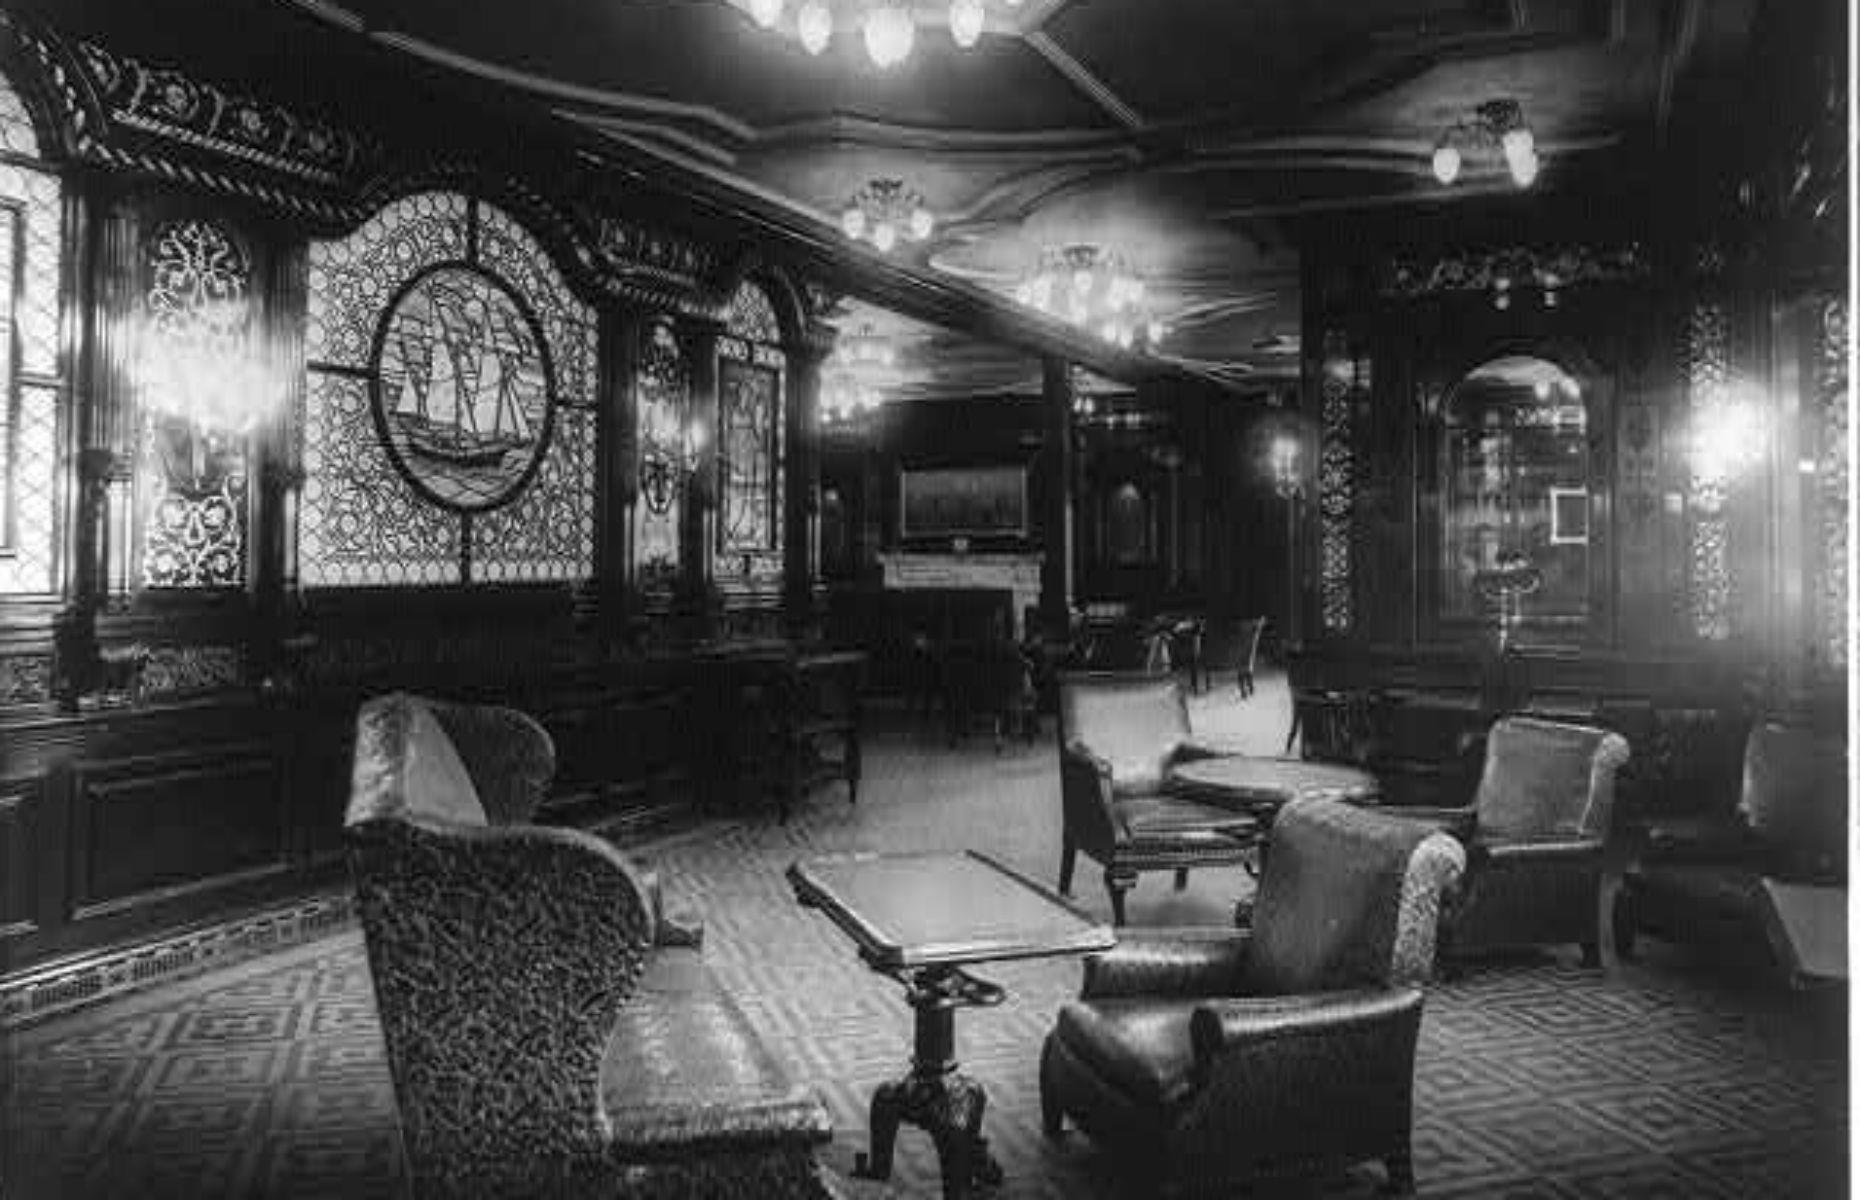 Slide 15 of 46: This first-class smoking room on RMS Olympic (pictured) would have been similar to the Titanic's. While ladies retired to the reading and writing room after eating – they were forbidden entry – male passengers went to the smoking room for cards and Scotch. Now discover the tragic story of the Titanic's lost sister ship too.